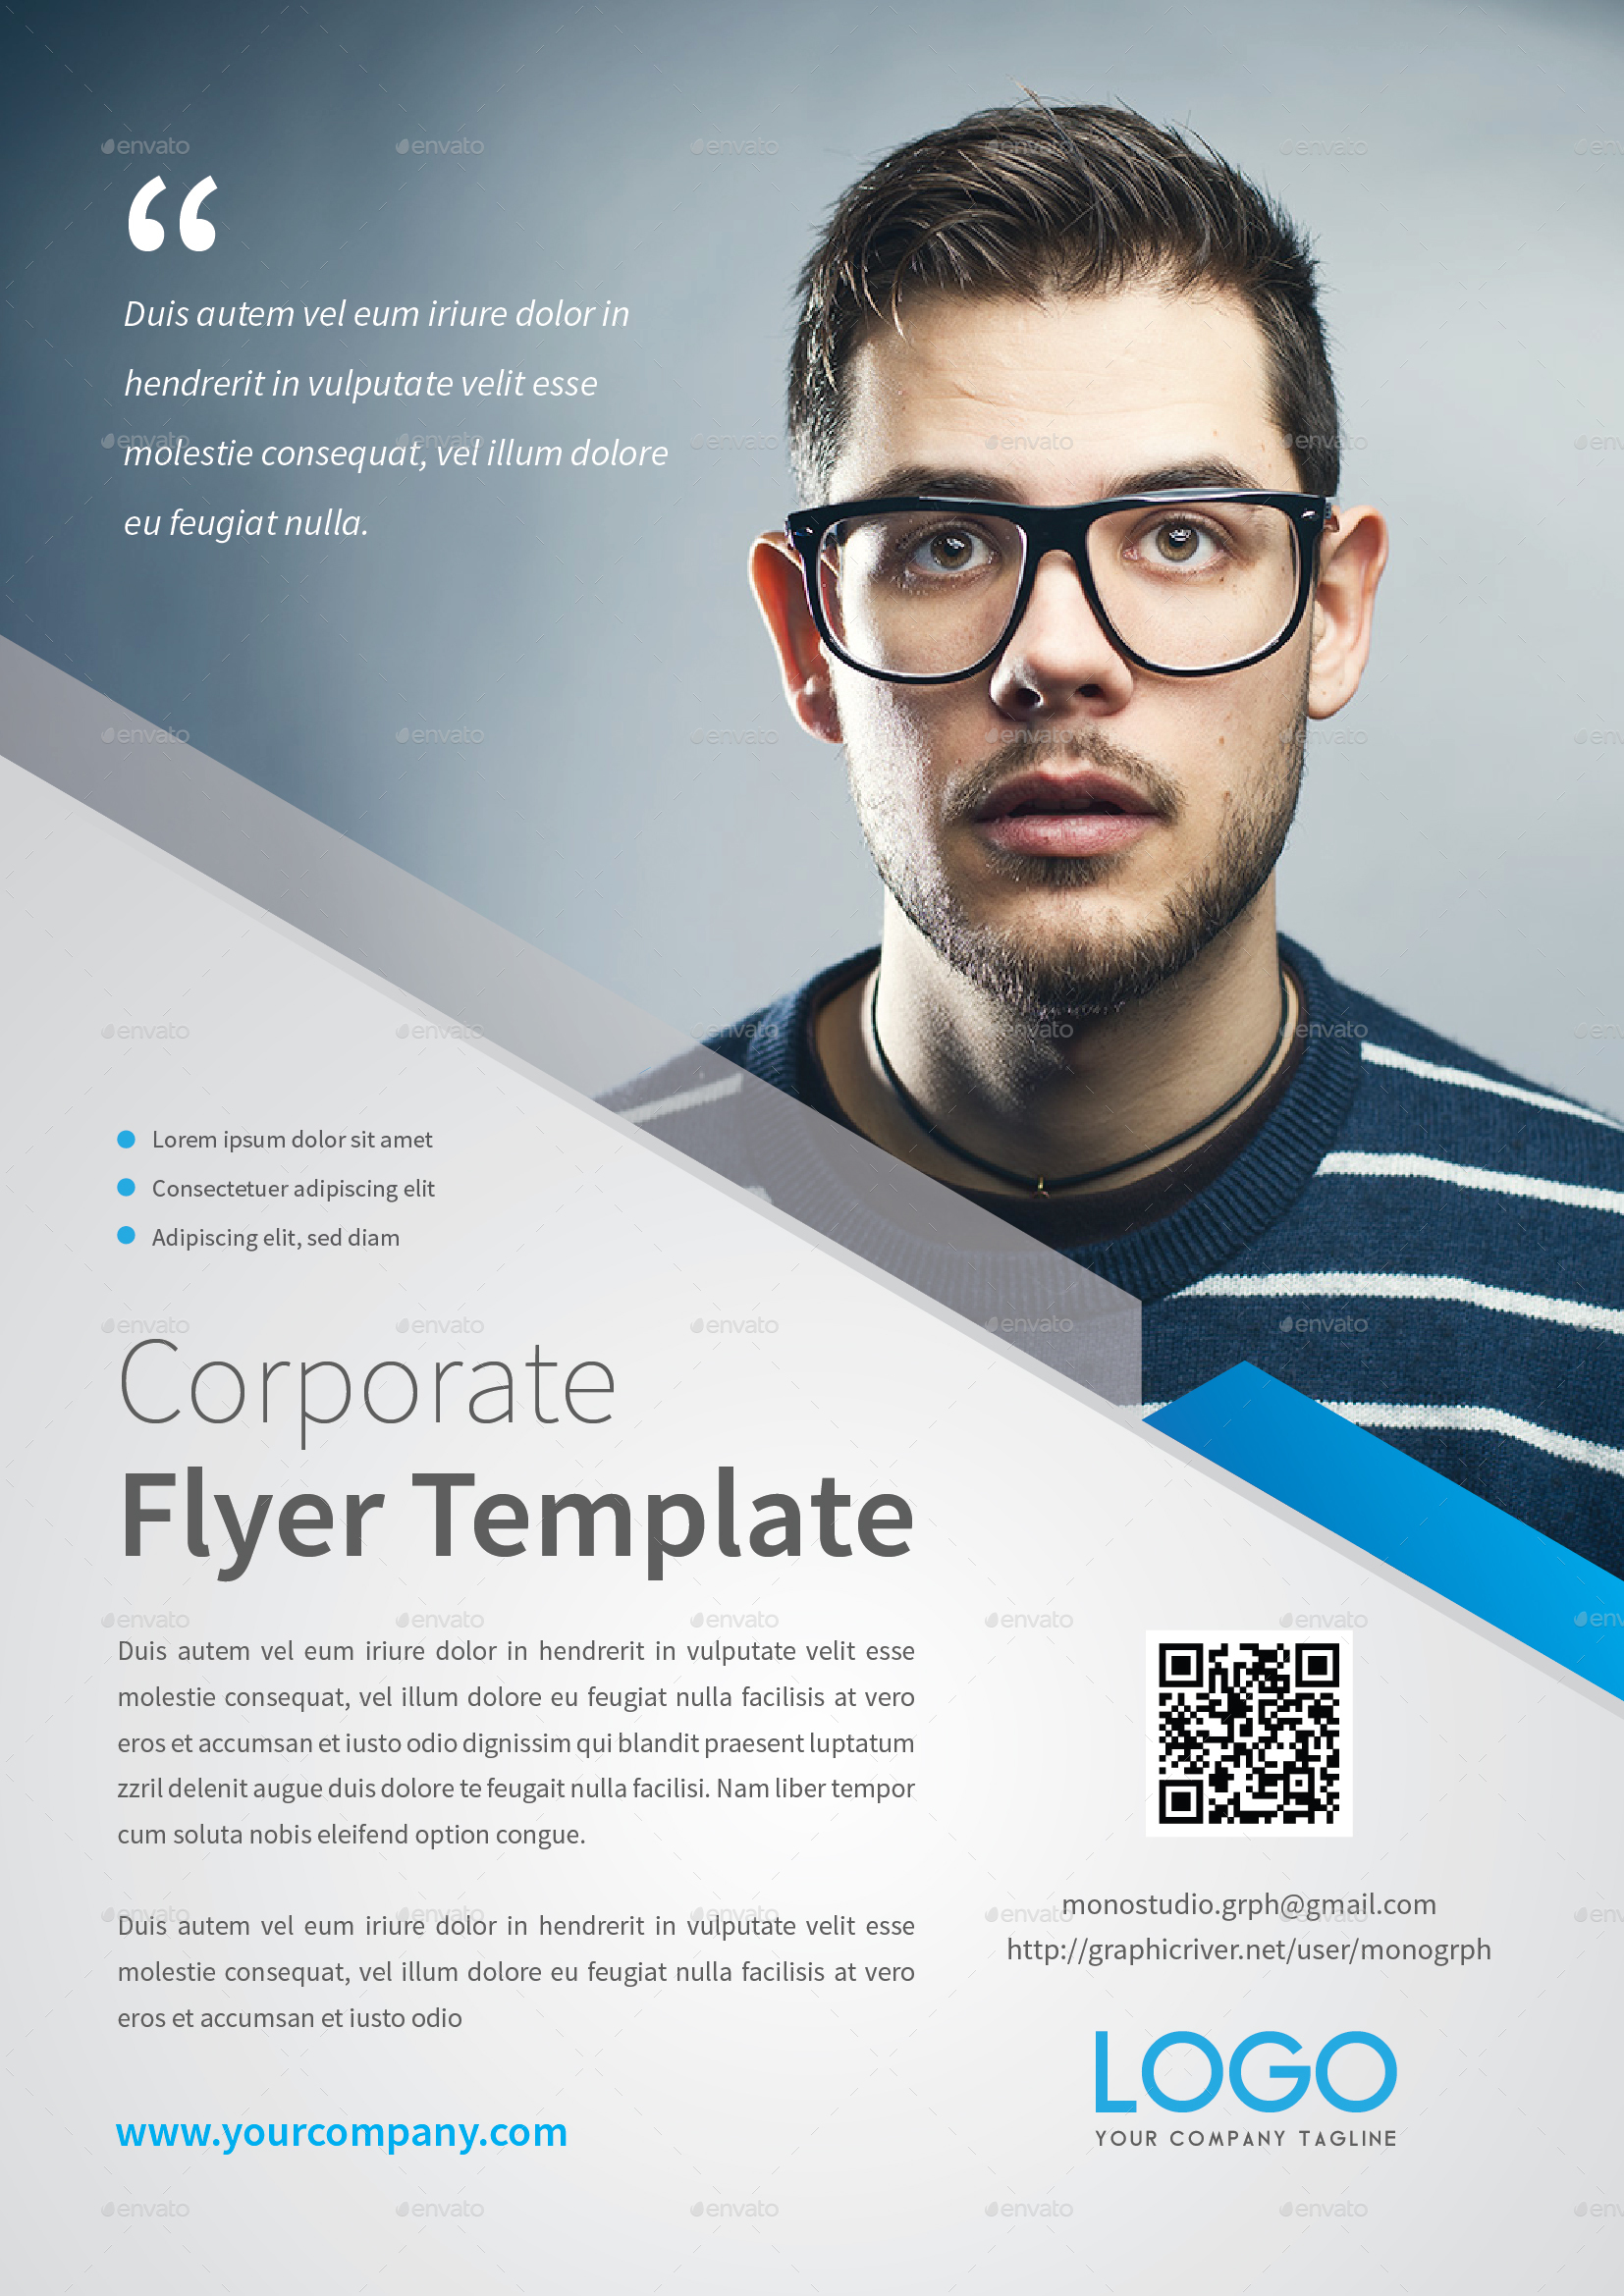 Corporate Flyer Template by MONOGRPH – Corporate Flyer Template